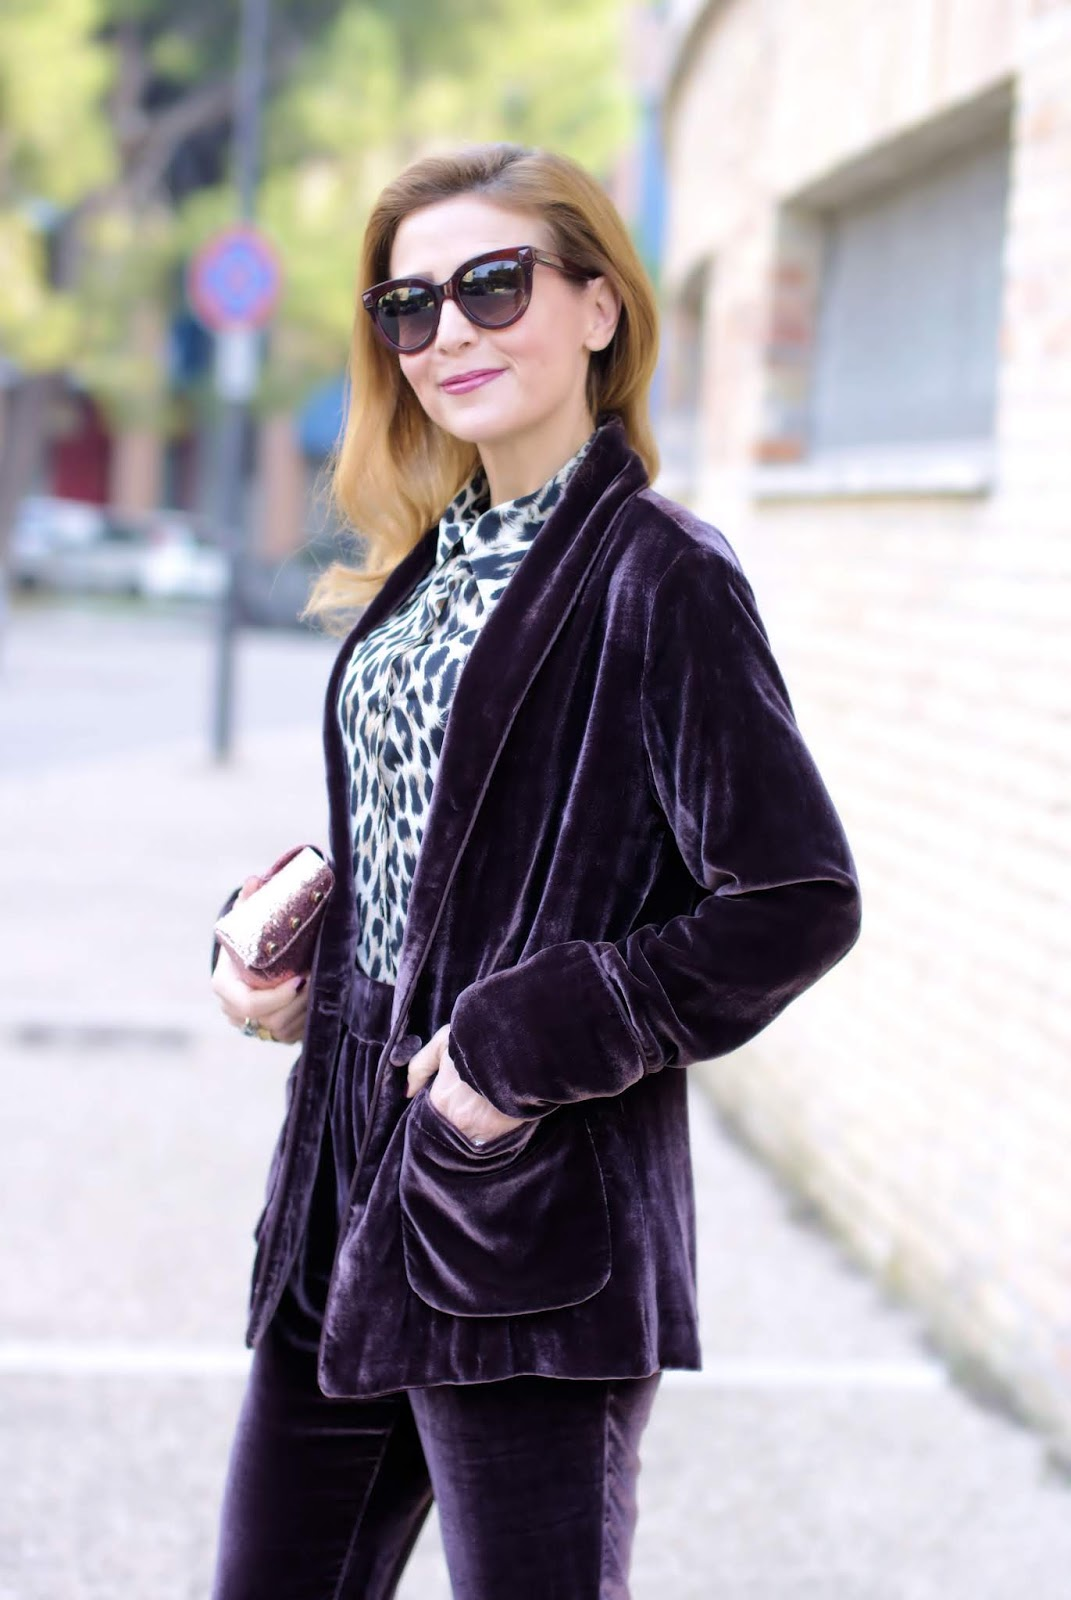 Velvet burgundy suit: a chic outfit idea from 1.2.3 Paris on Fashion and Cookies fashion, fashion blogger style